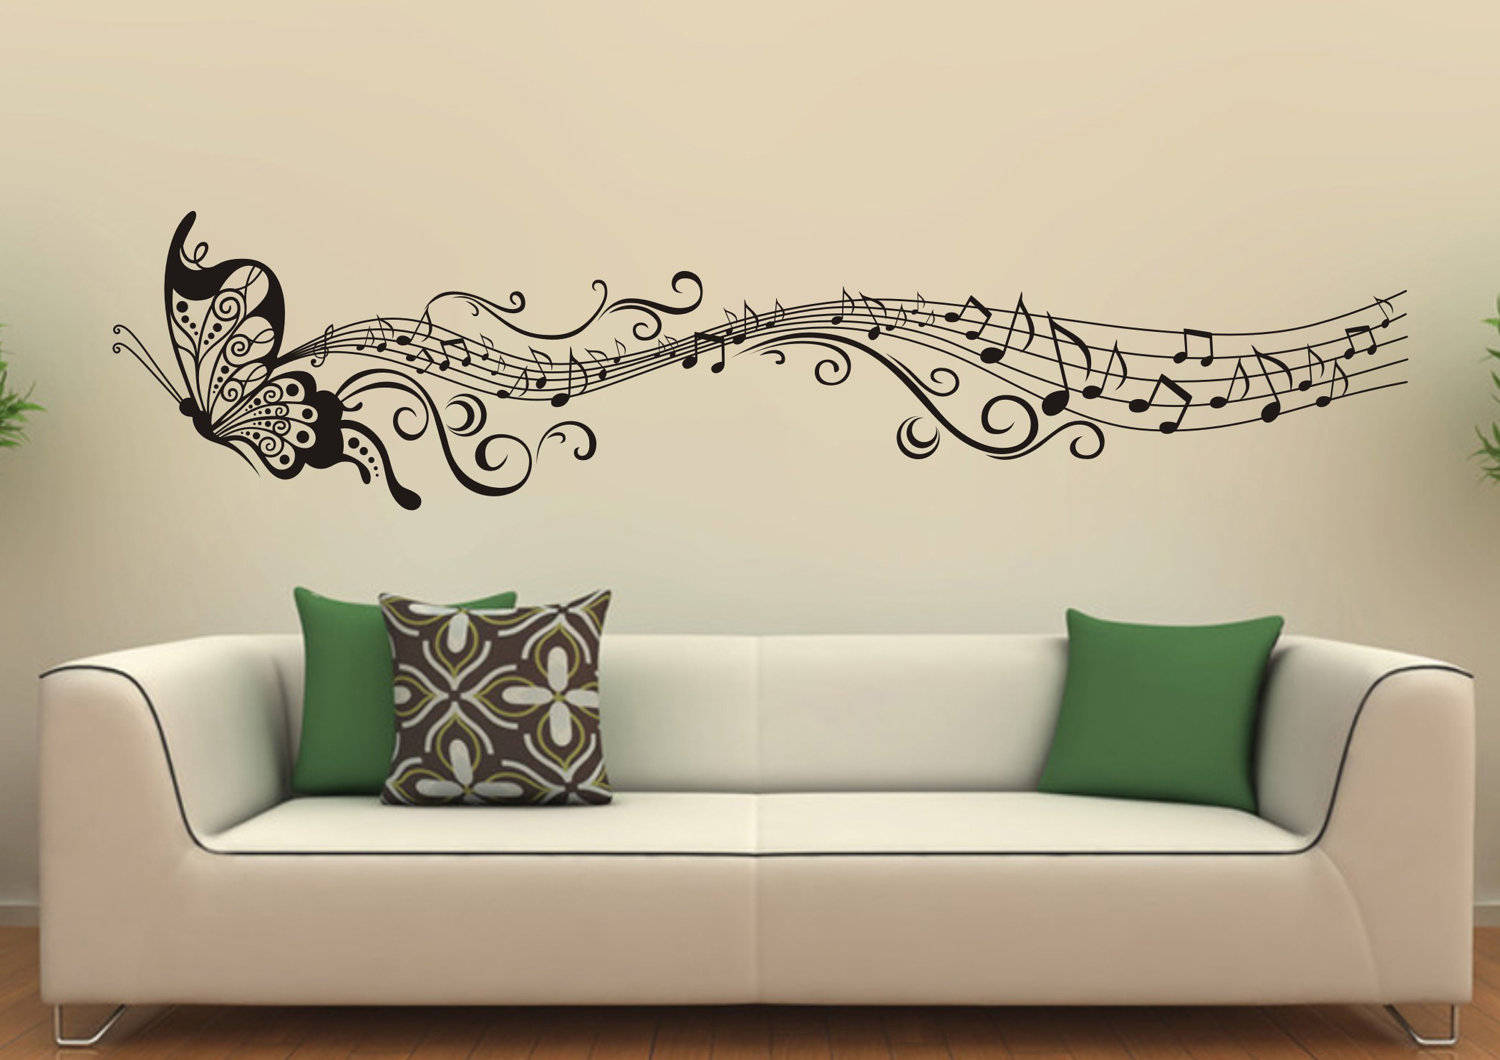 30 unique wall decor ideas godfather style Creative wall hangings